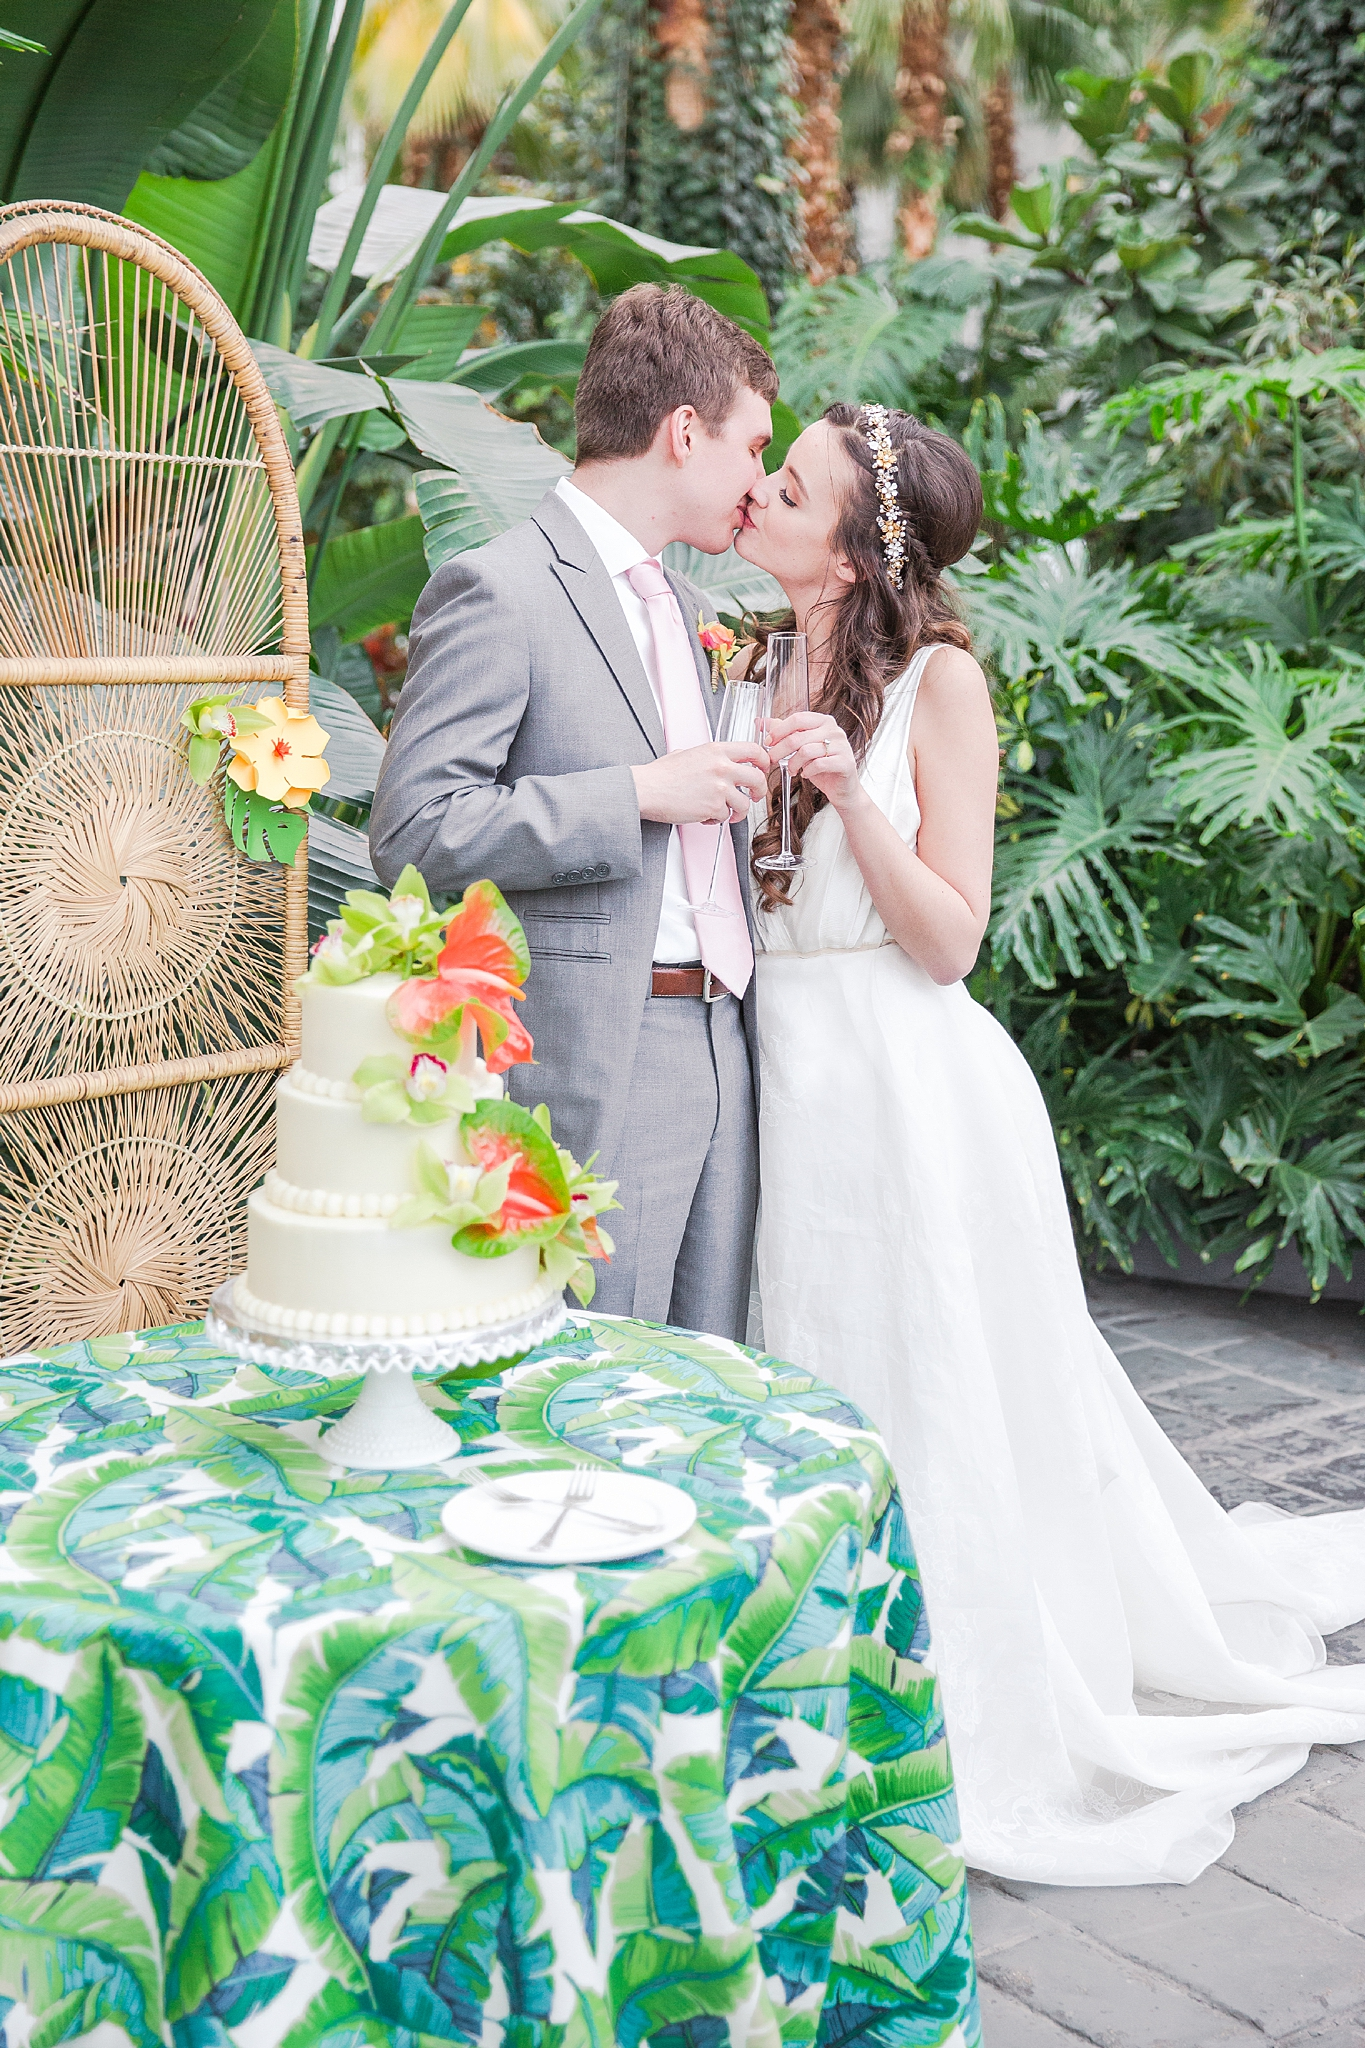 colorful-tropical-wedding-photos-at-the-crystal-gardens-in-chicago-illinois-by-courtney-carolyn-photography_0049.jpg